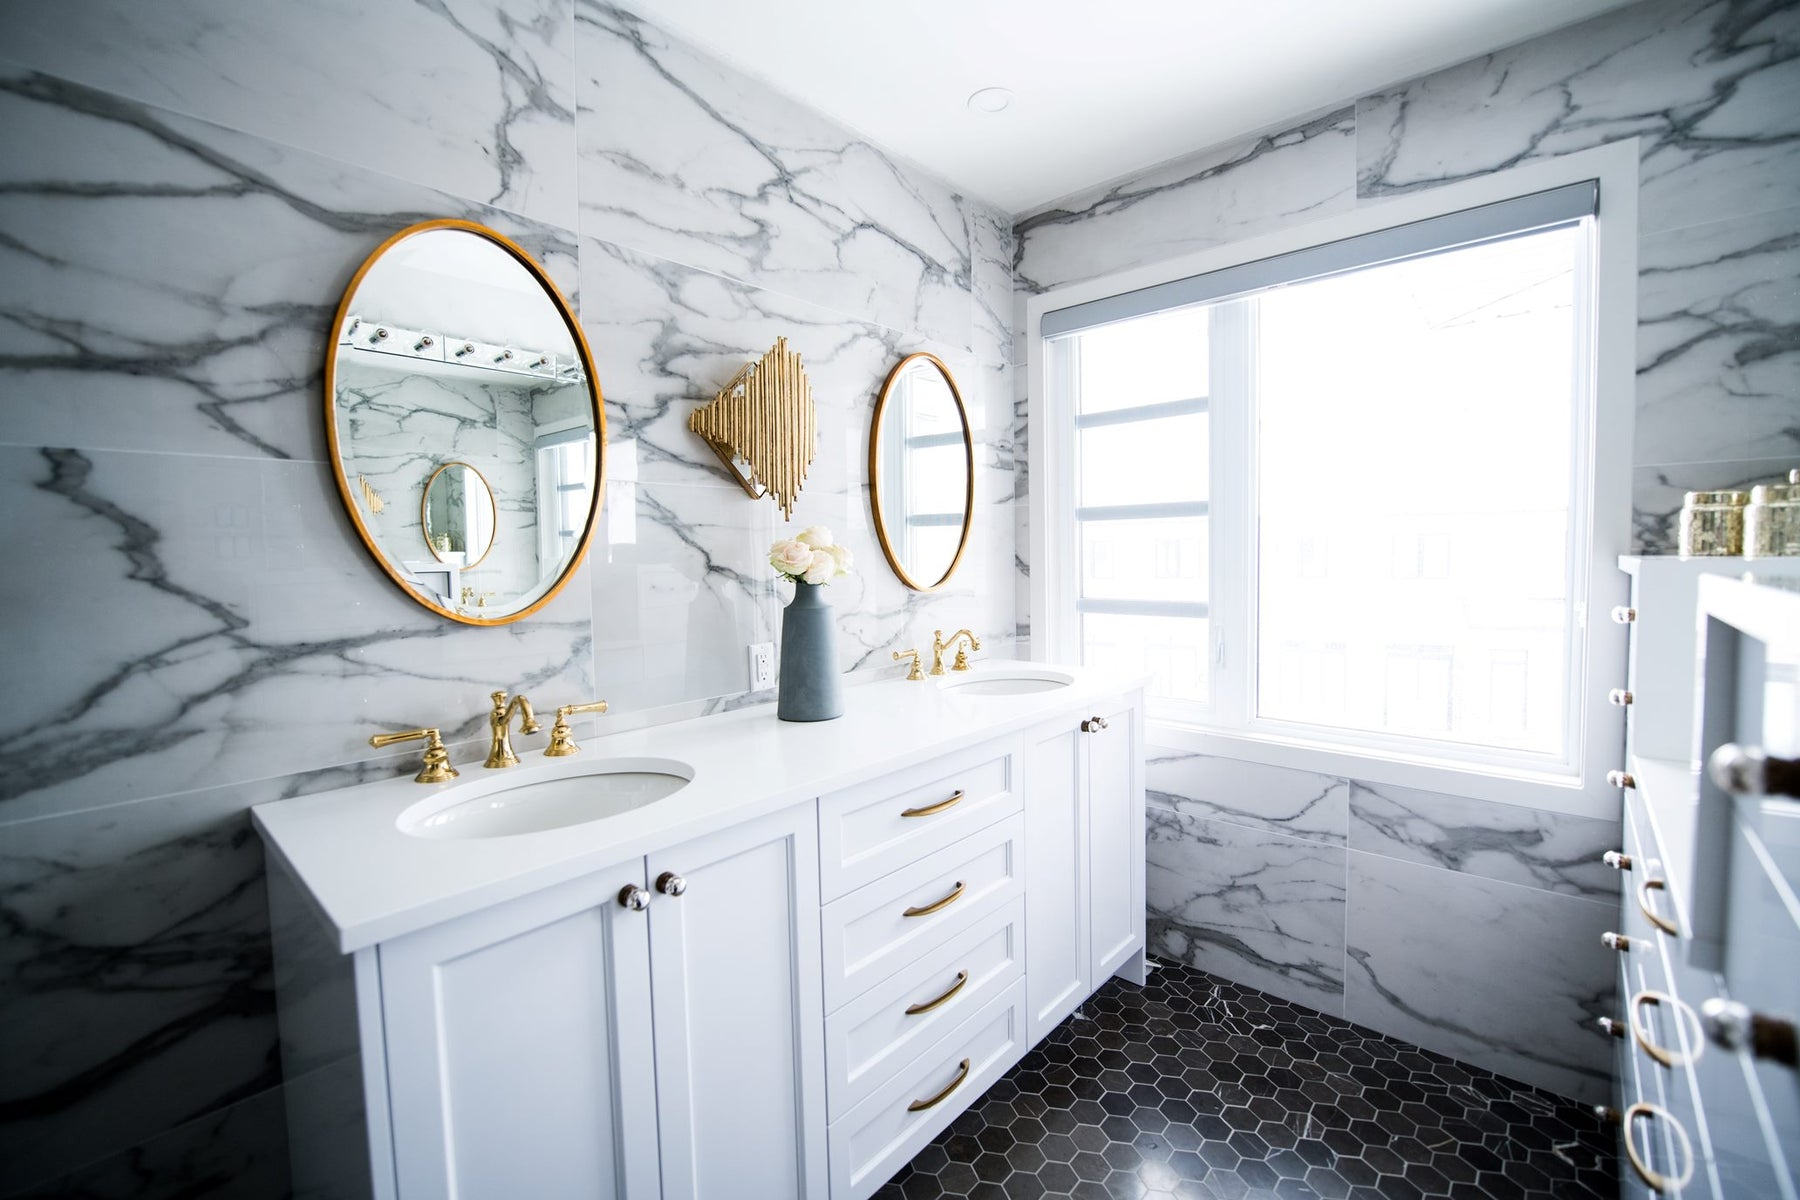 Using Color to Enhance Space—6 Tips with White Marble Tile